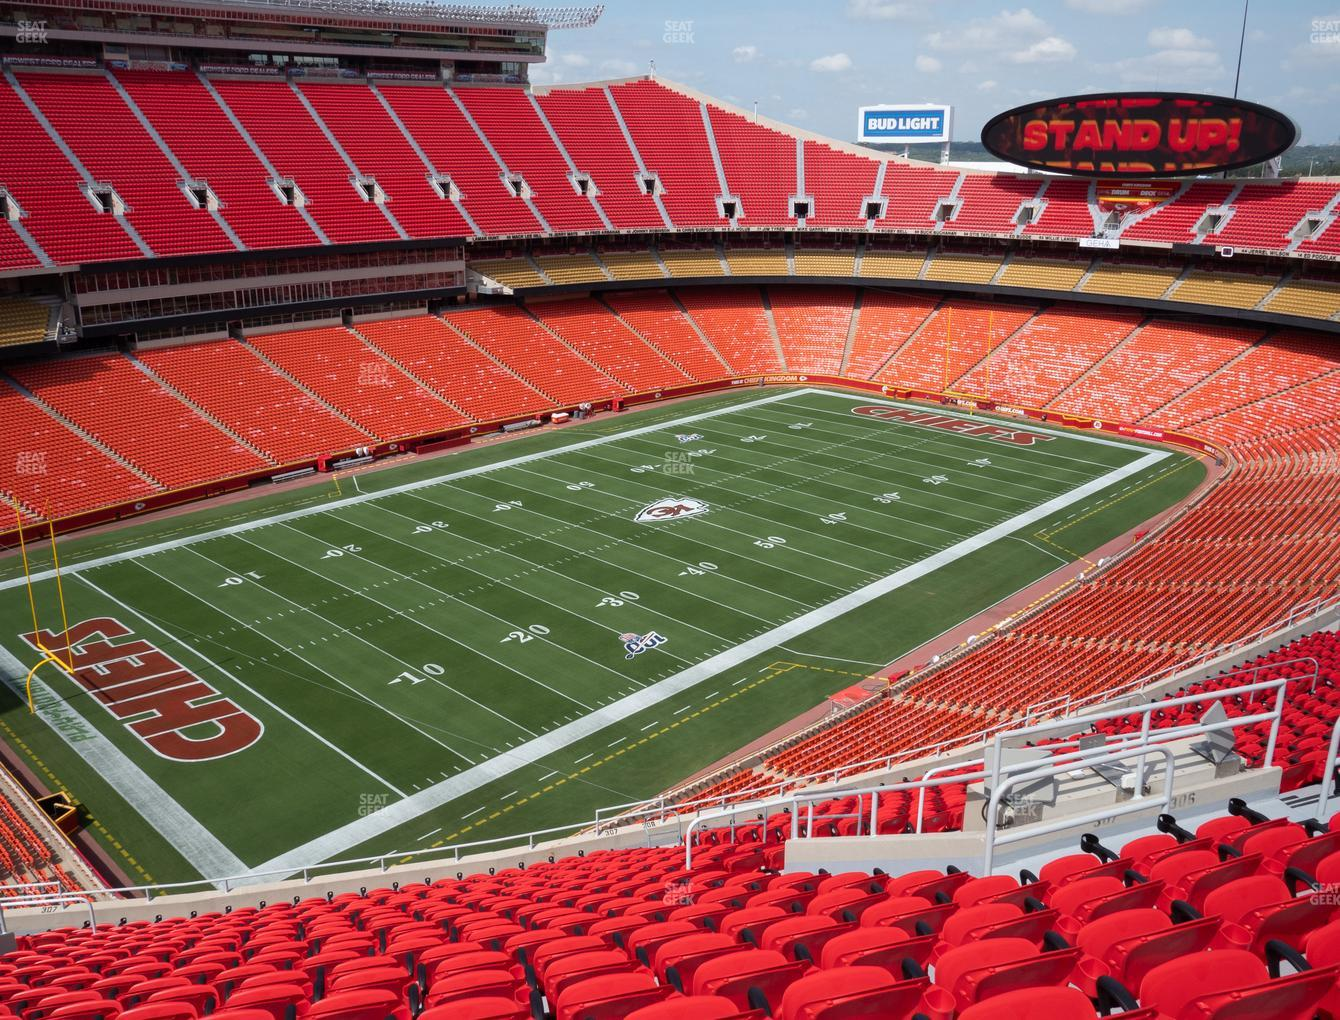 Arrowhead Stadium Section 307 Seat Views Seatgeek If a player pierces themselves with the arrow, they will obtain a stand. arrowhead stadium section 307 seat